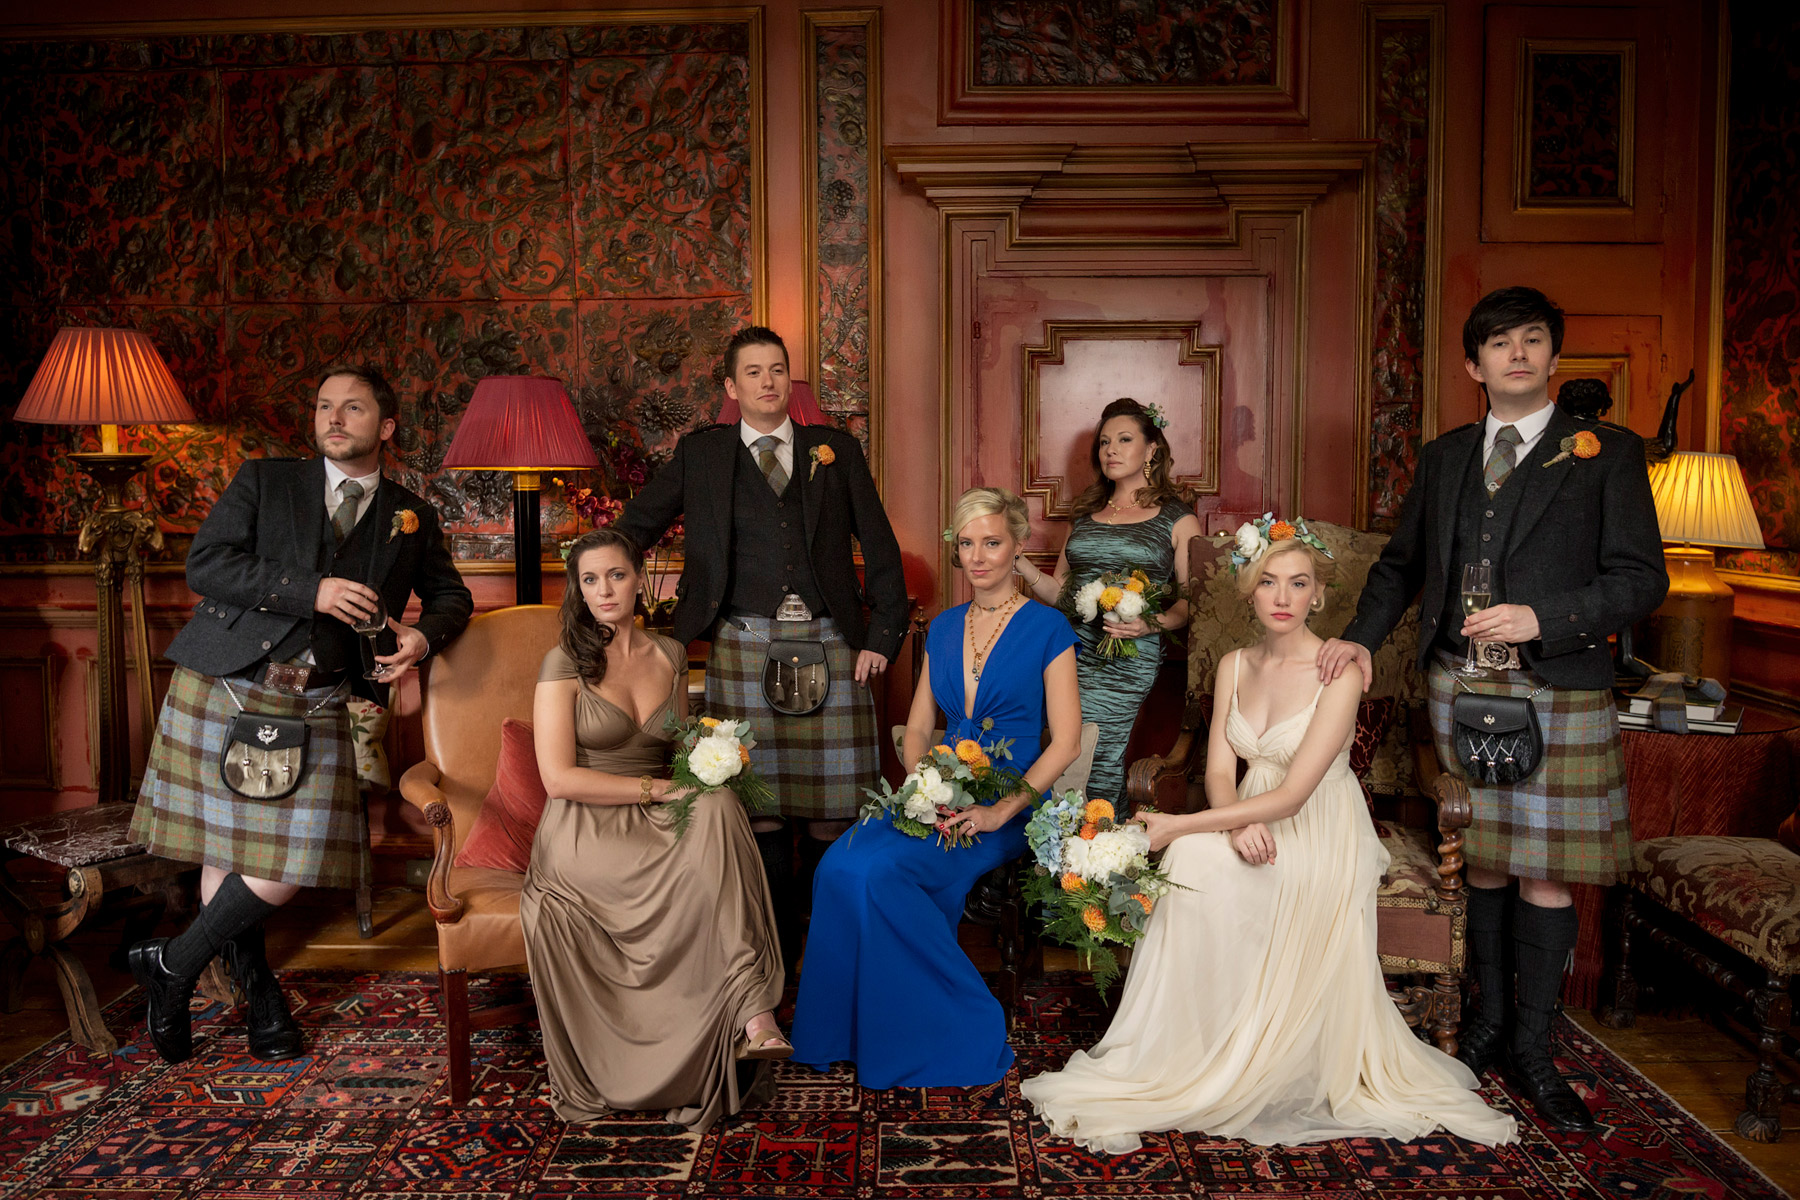 royal tenenbaums style wedding photo edinburgh, scotland